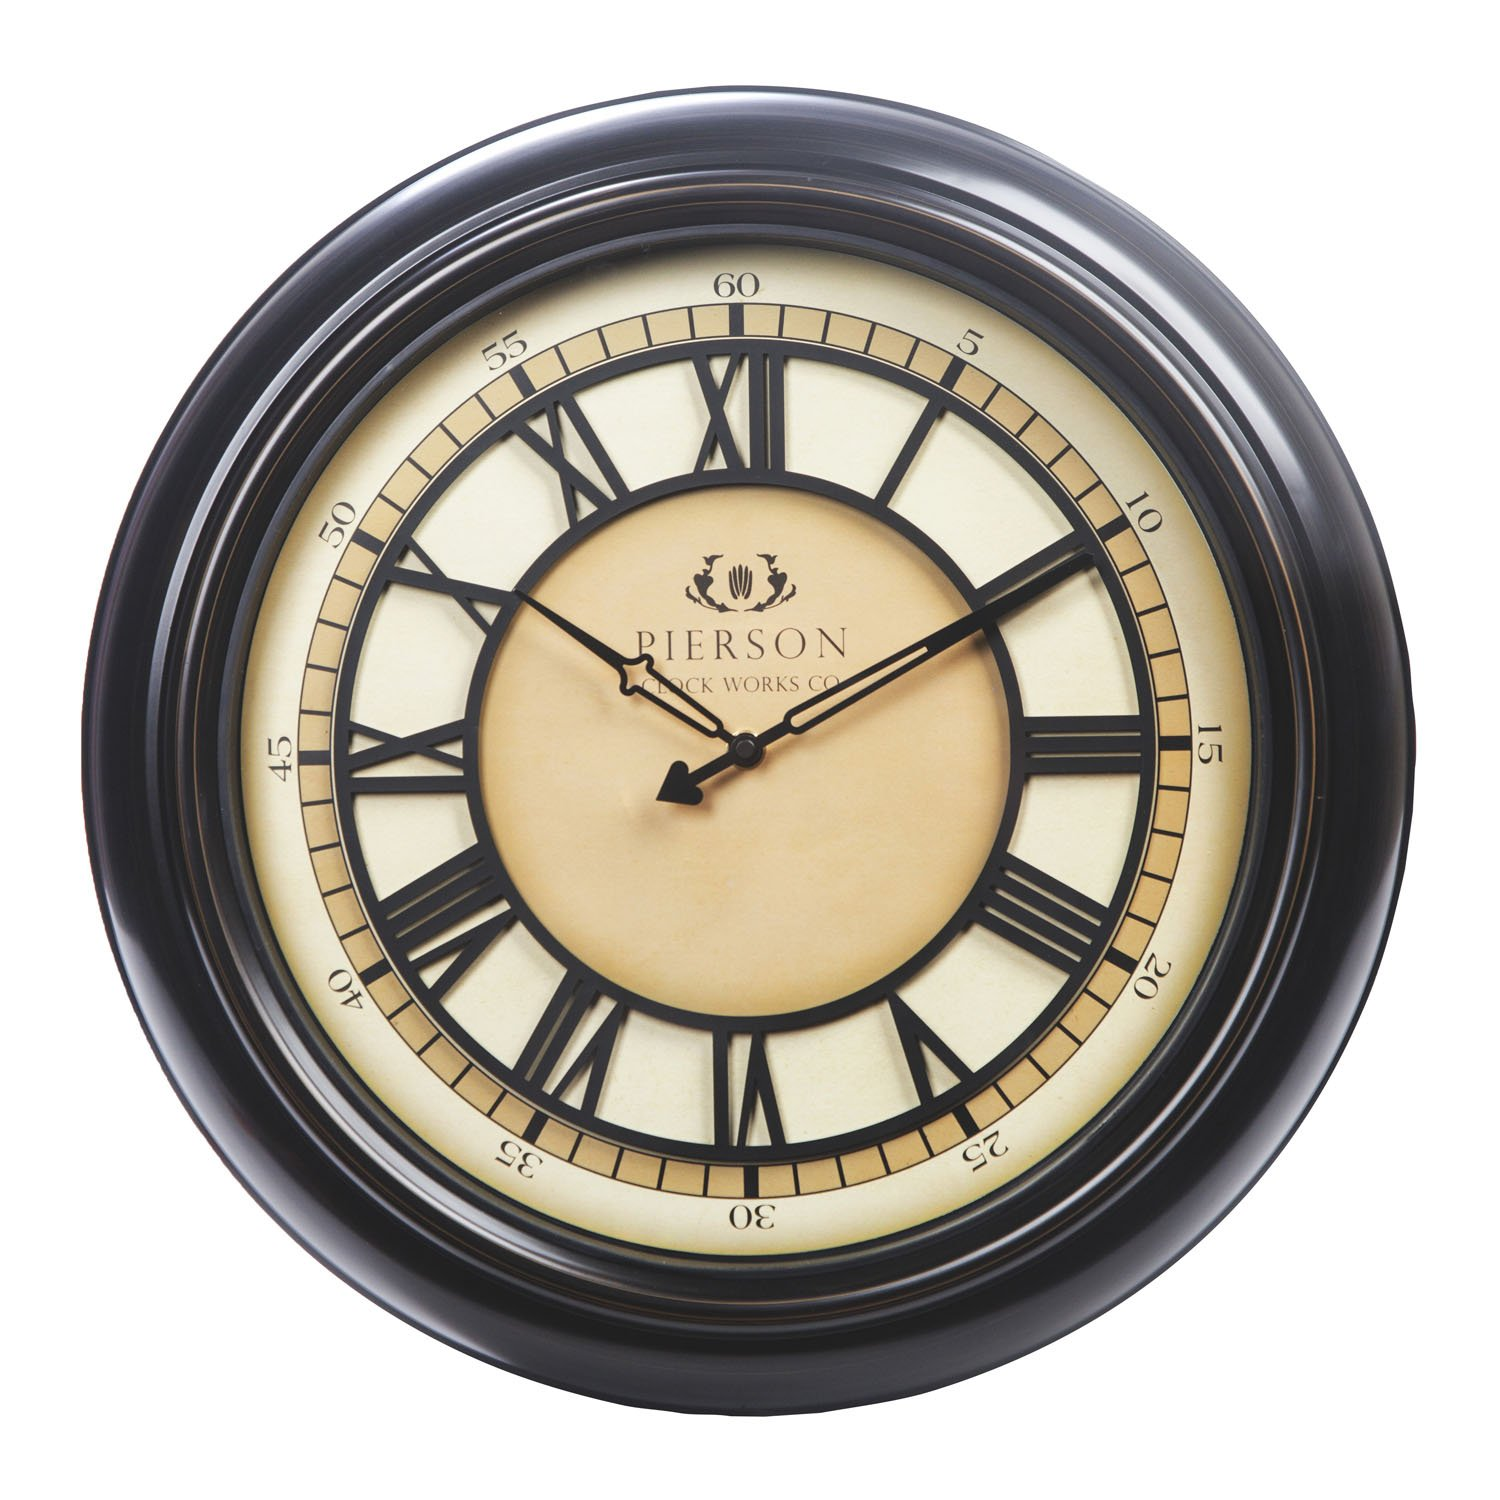 Amazon chaney instrument co 75176 wall clock with raised dial amazon chaney instrument co 75176 wall clock with raised dial 18 black home kitchen amipublicfo Choice Image